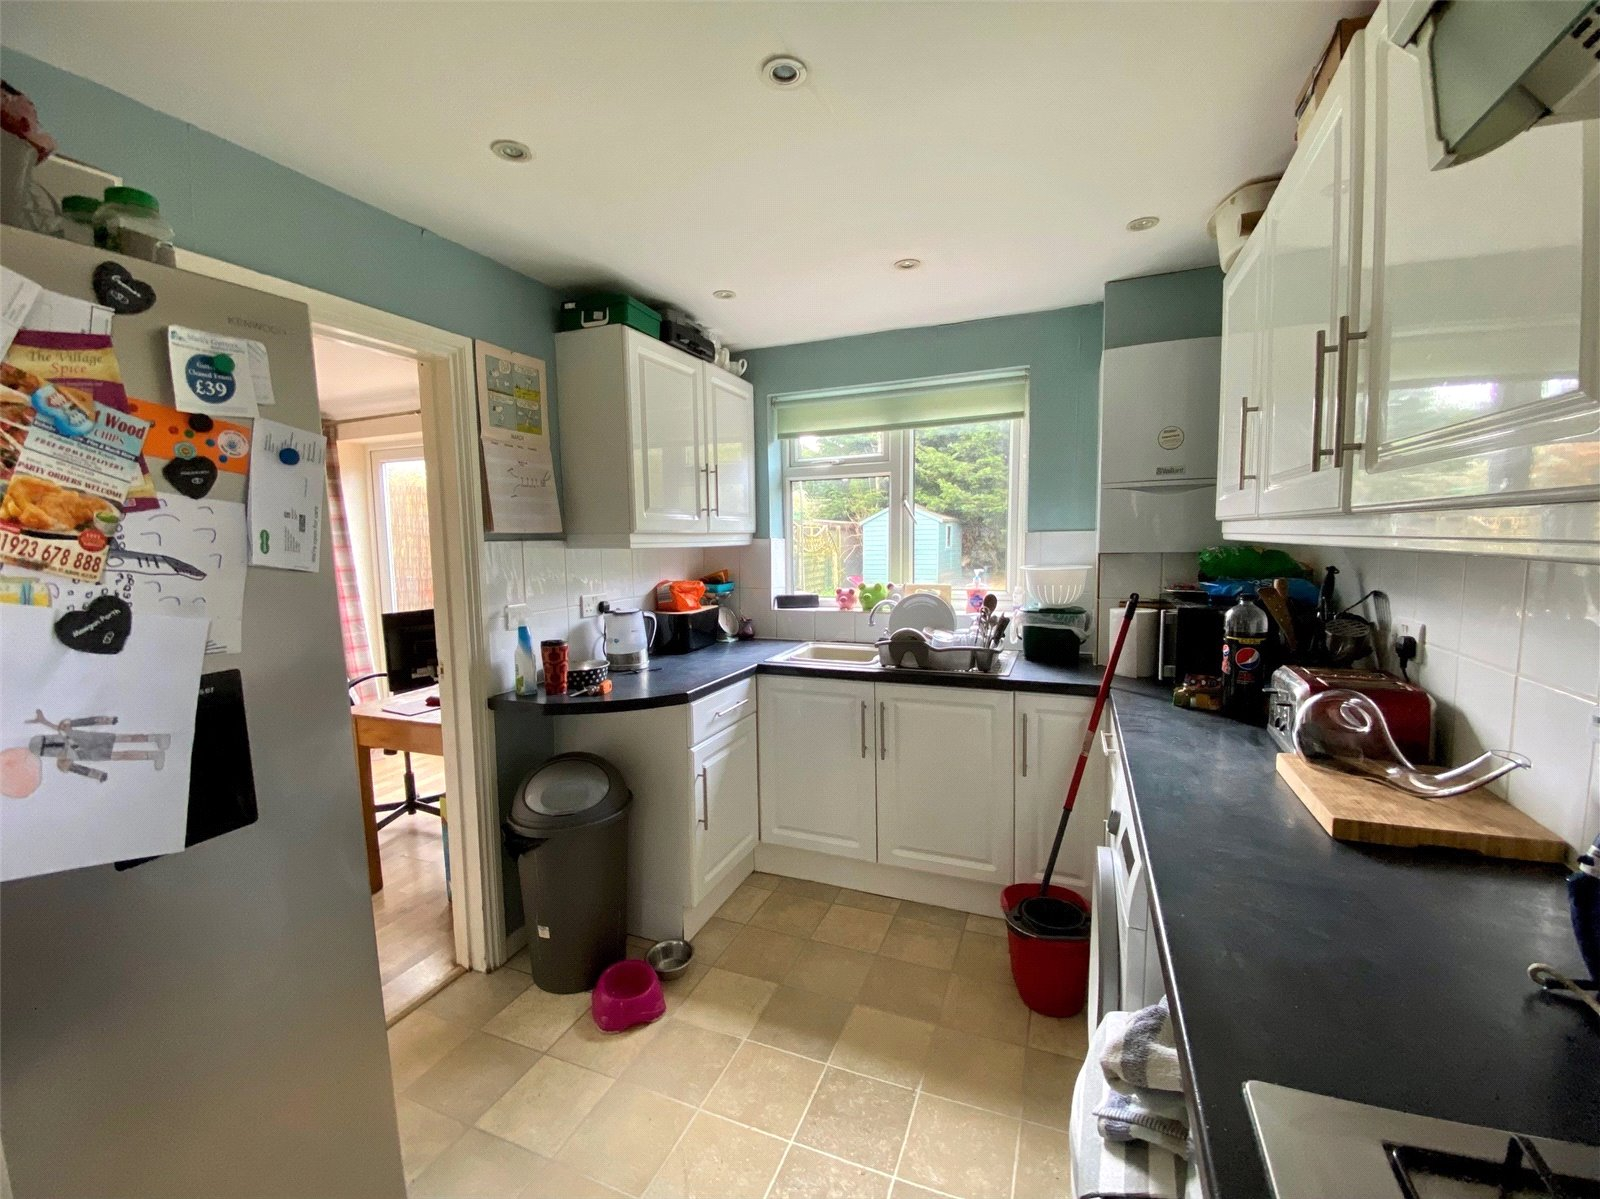 3 bed house to rent in Bricket Wood, AL2 3NB 8